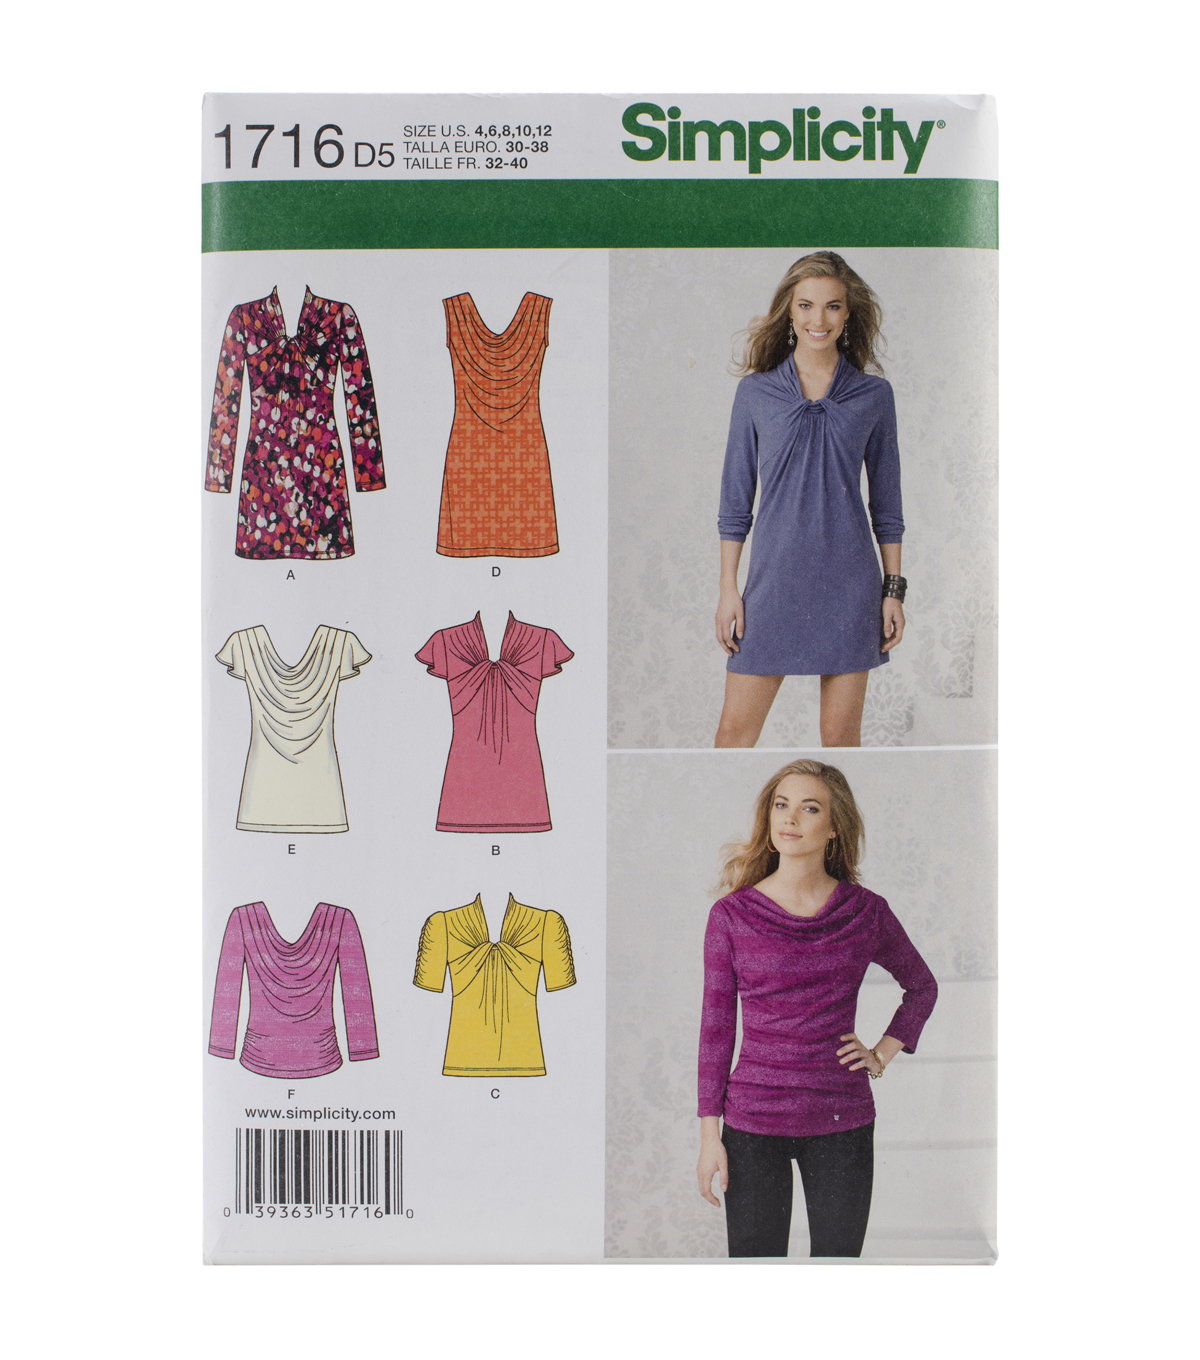 Simplicity Patterns Us1716D5-Simplicity Misses\u0027 Knit Top And Mini Dress-4-6-8-10-12